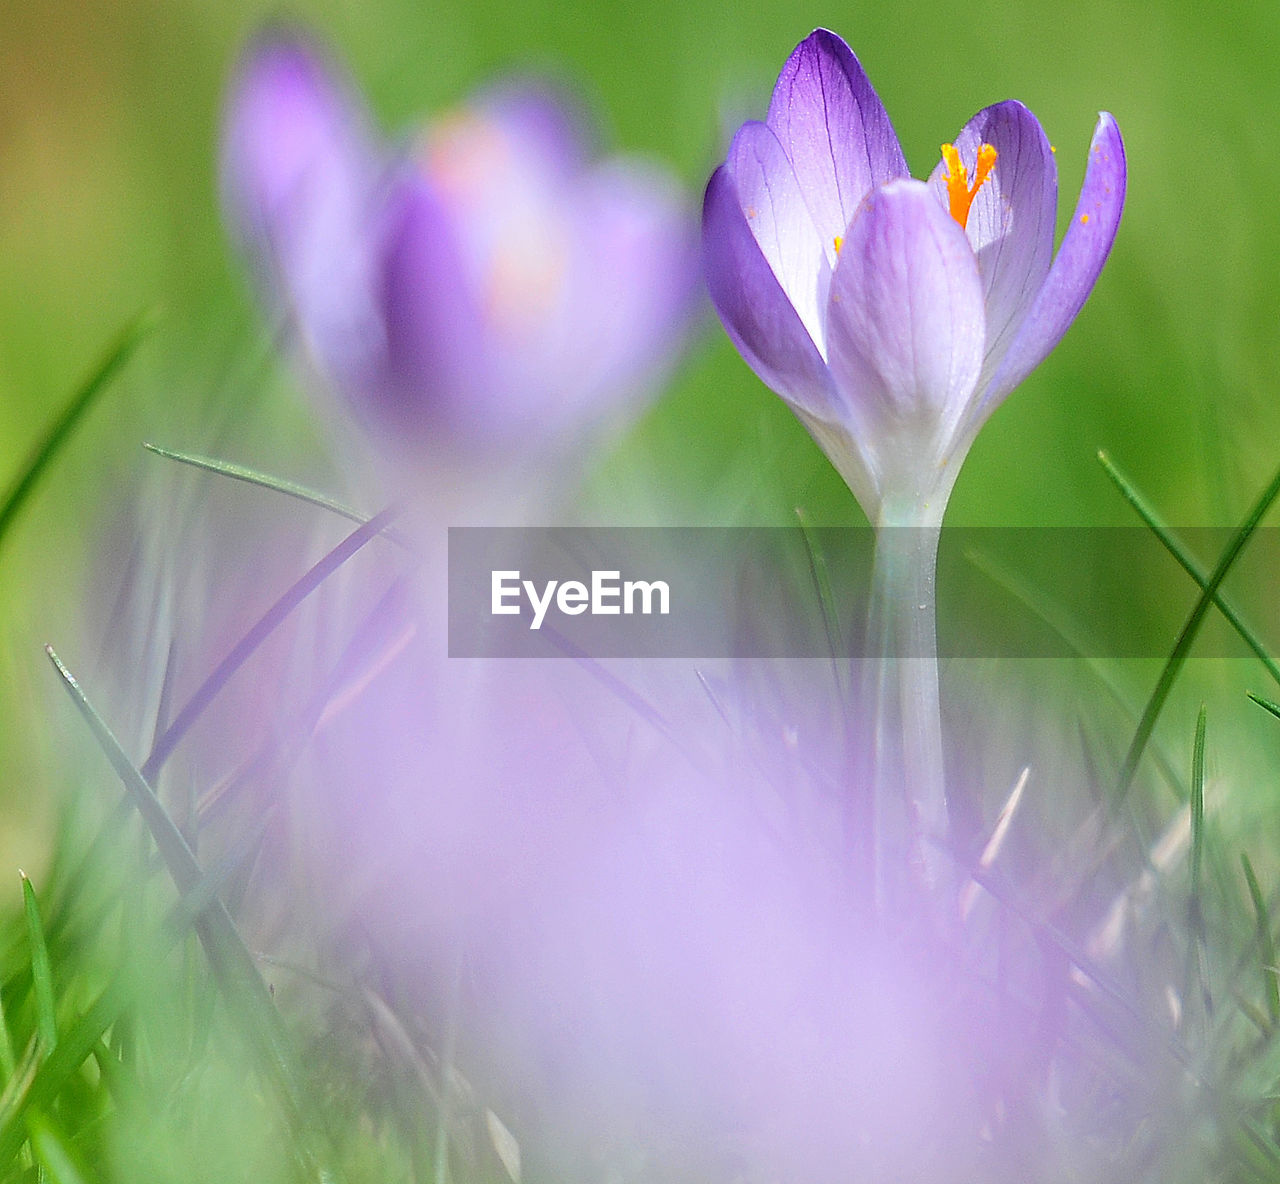 flower, beauty in nature, nature, petal, fragility, growth, freshness, flower head, plant, purple, selective focus, close-up, no people, outdoors, blooming, day, field, springtime, crocus, grass